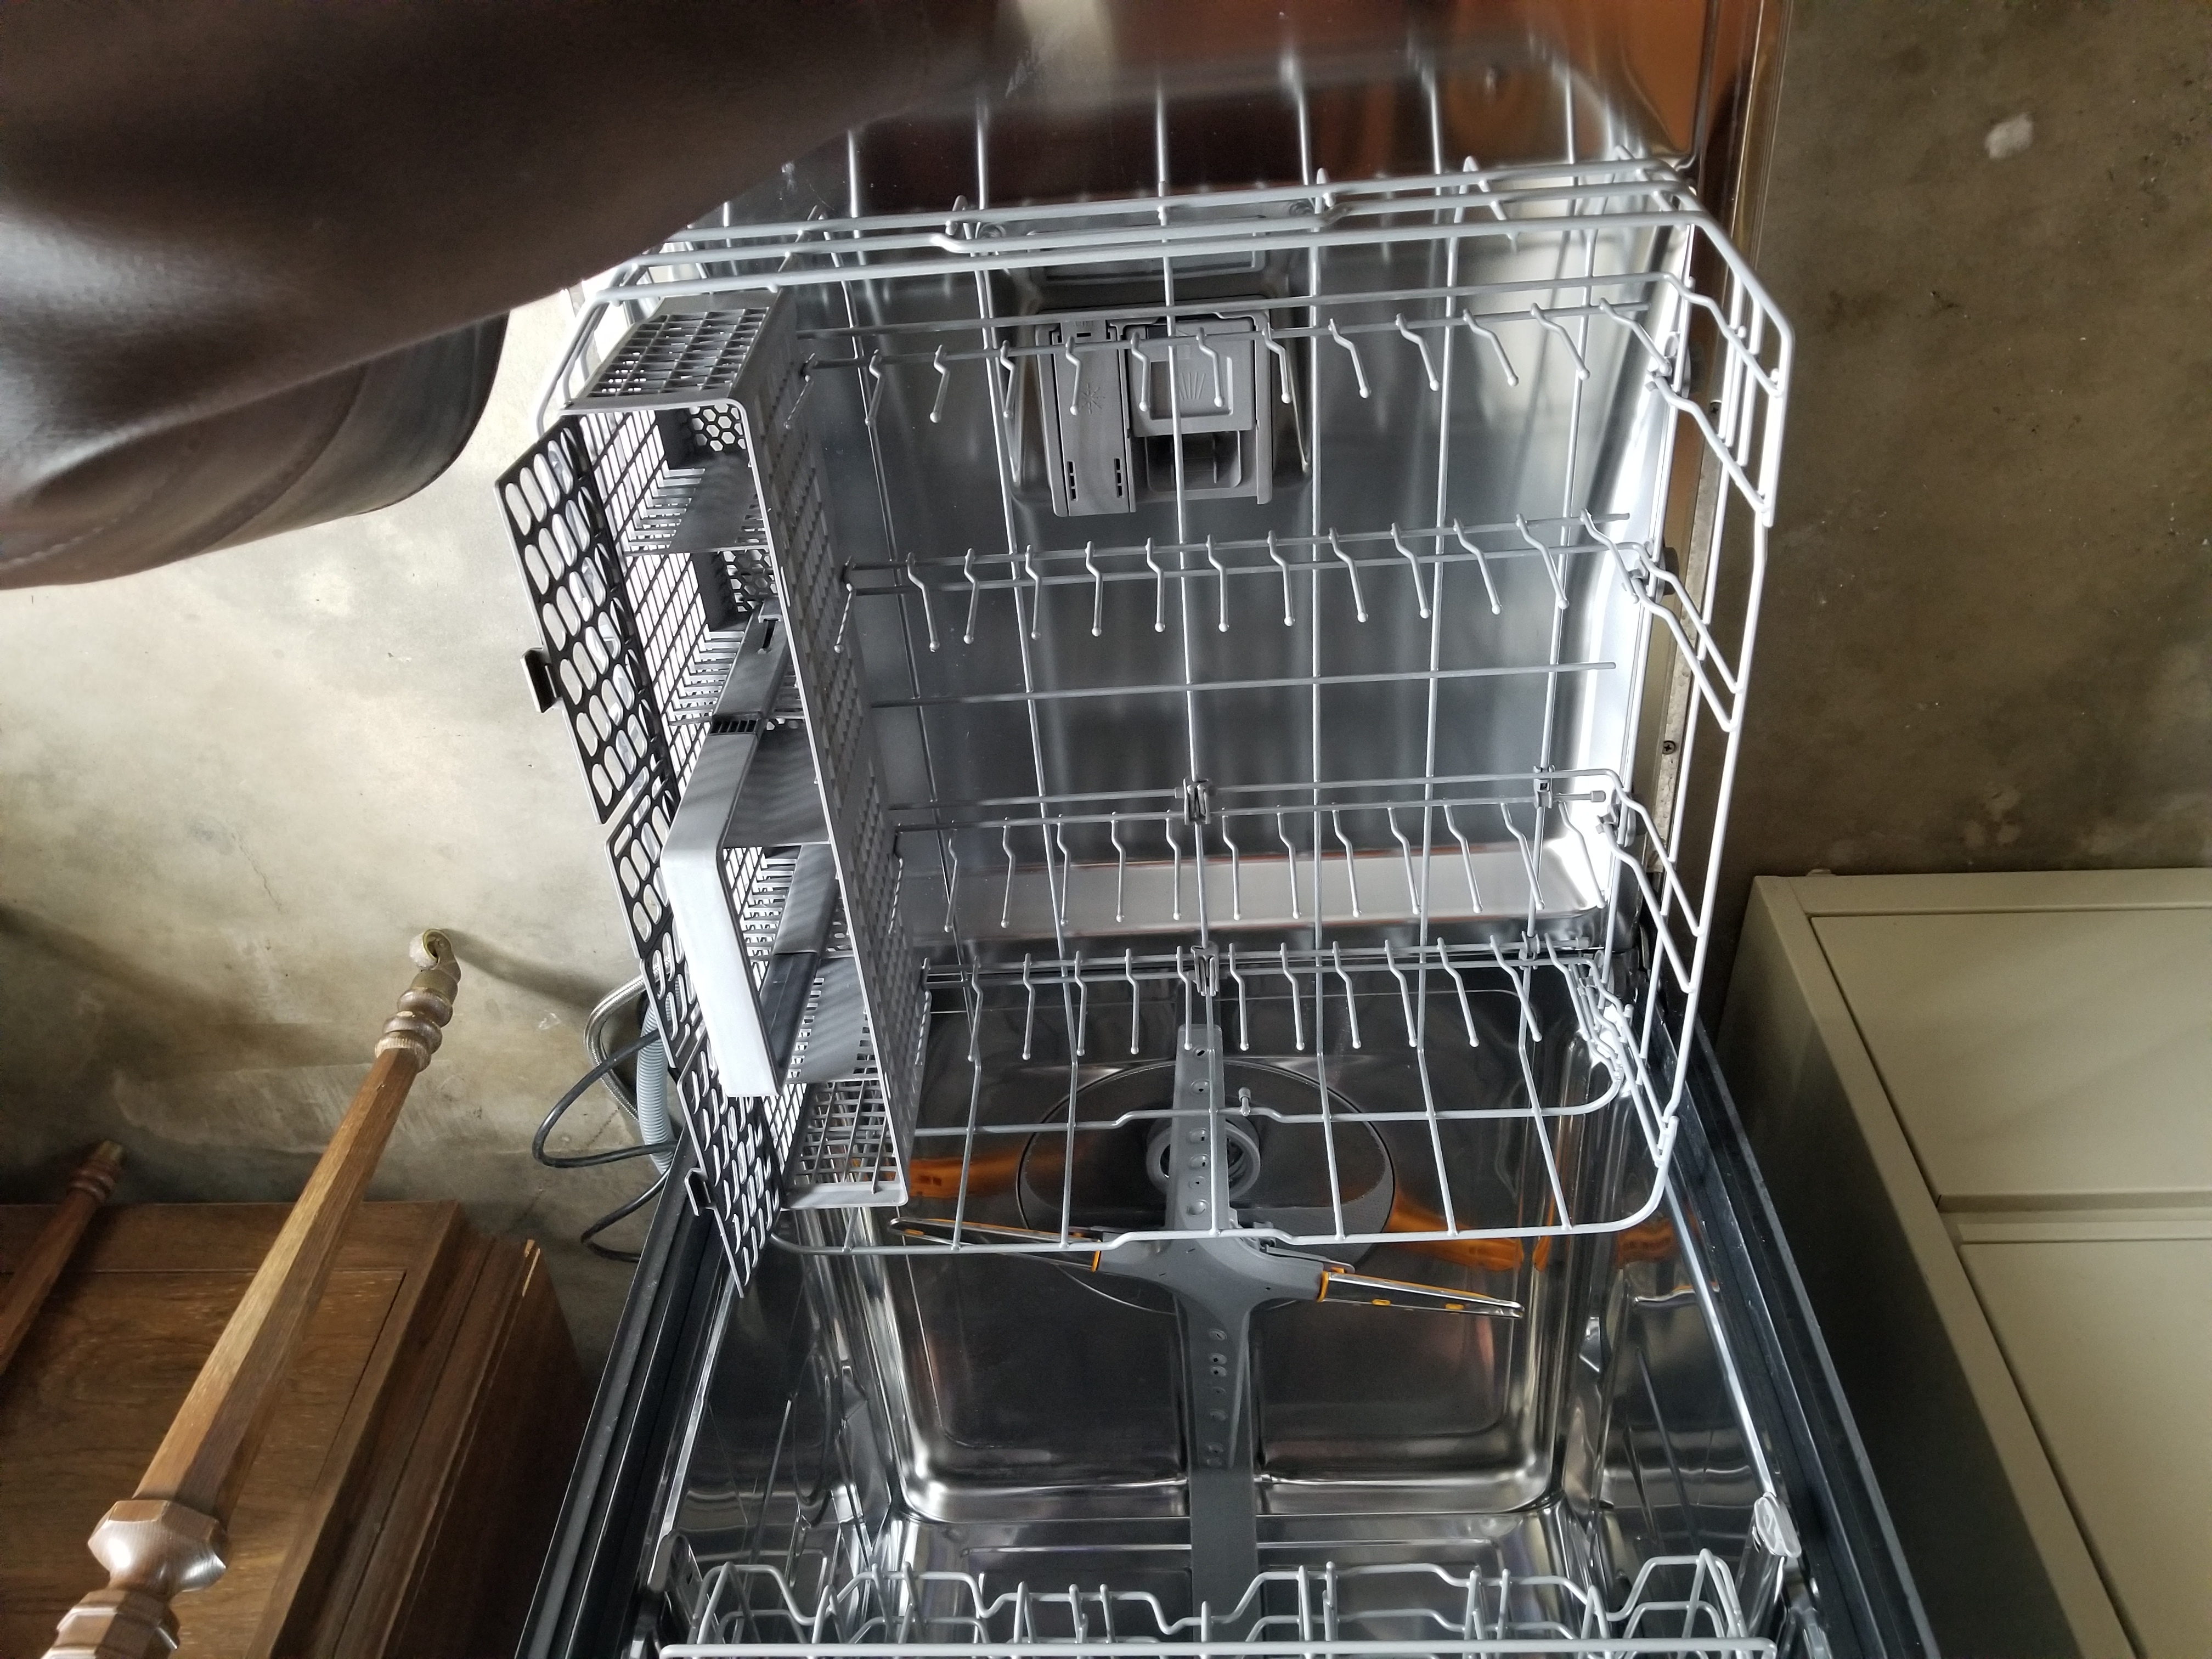 Maytag Dishwasher (8 months old!!)